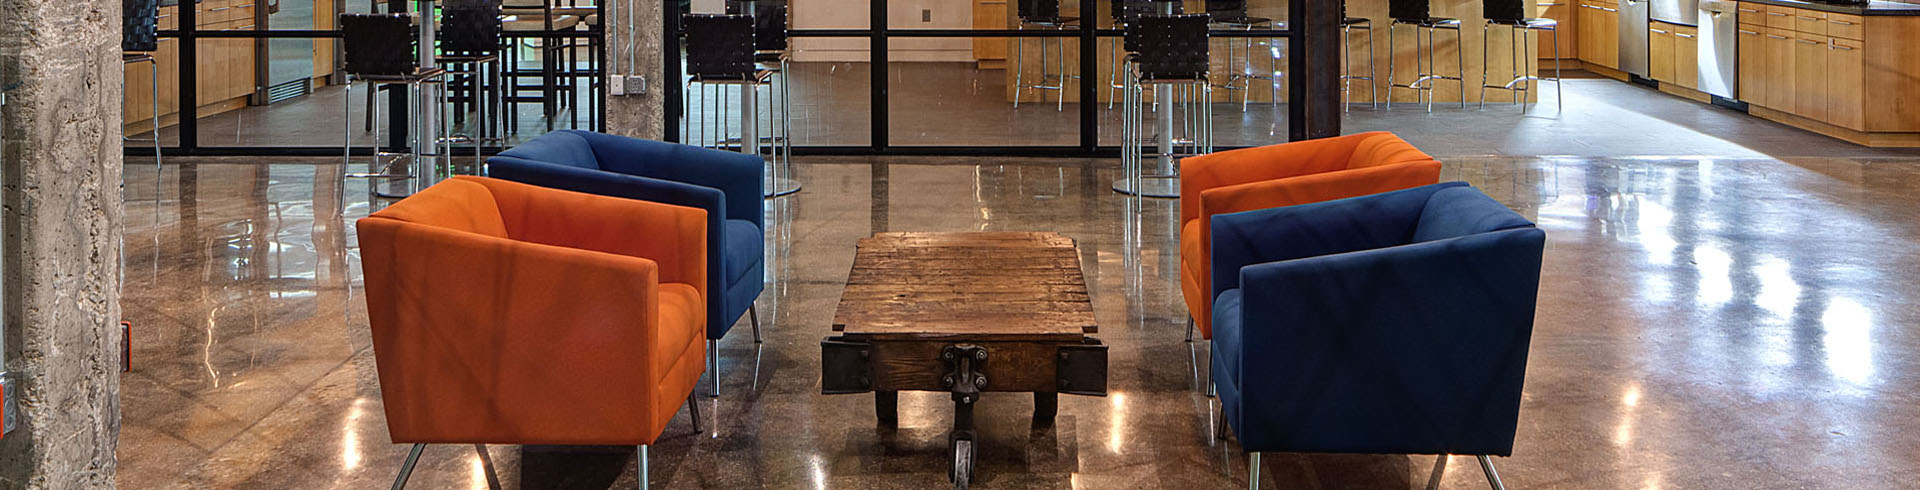 Everything For Offices New Used Office Furniture In Denver And